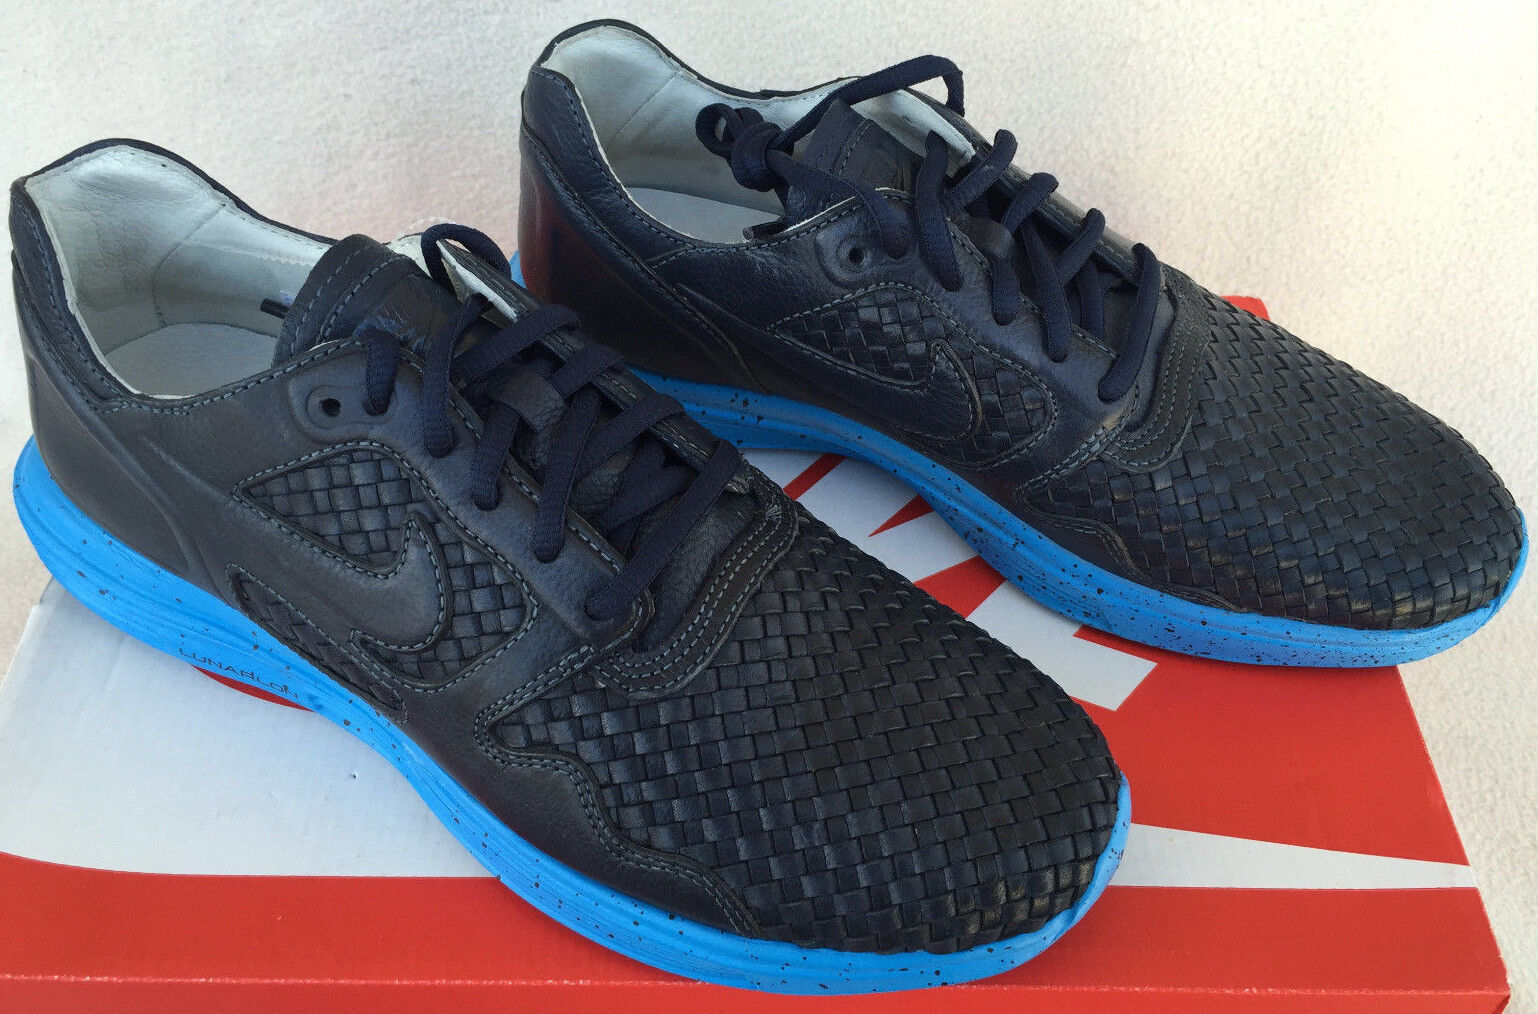 Nike + Lunar Flow Woven Leather TZ 559969-440 Obsidian Running shoes Men's 10